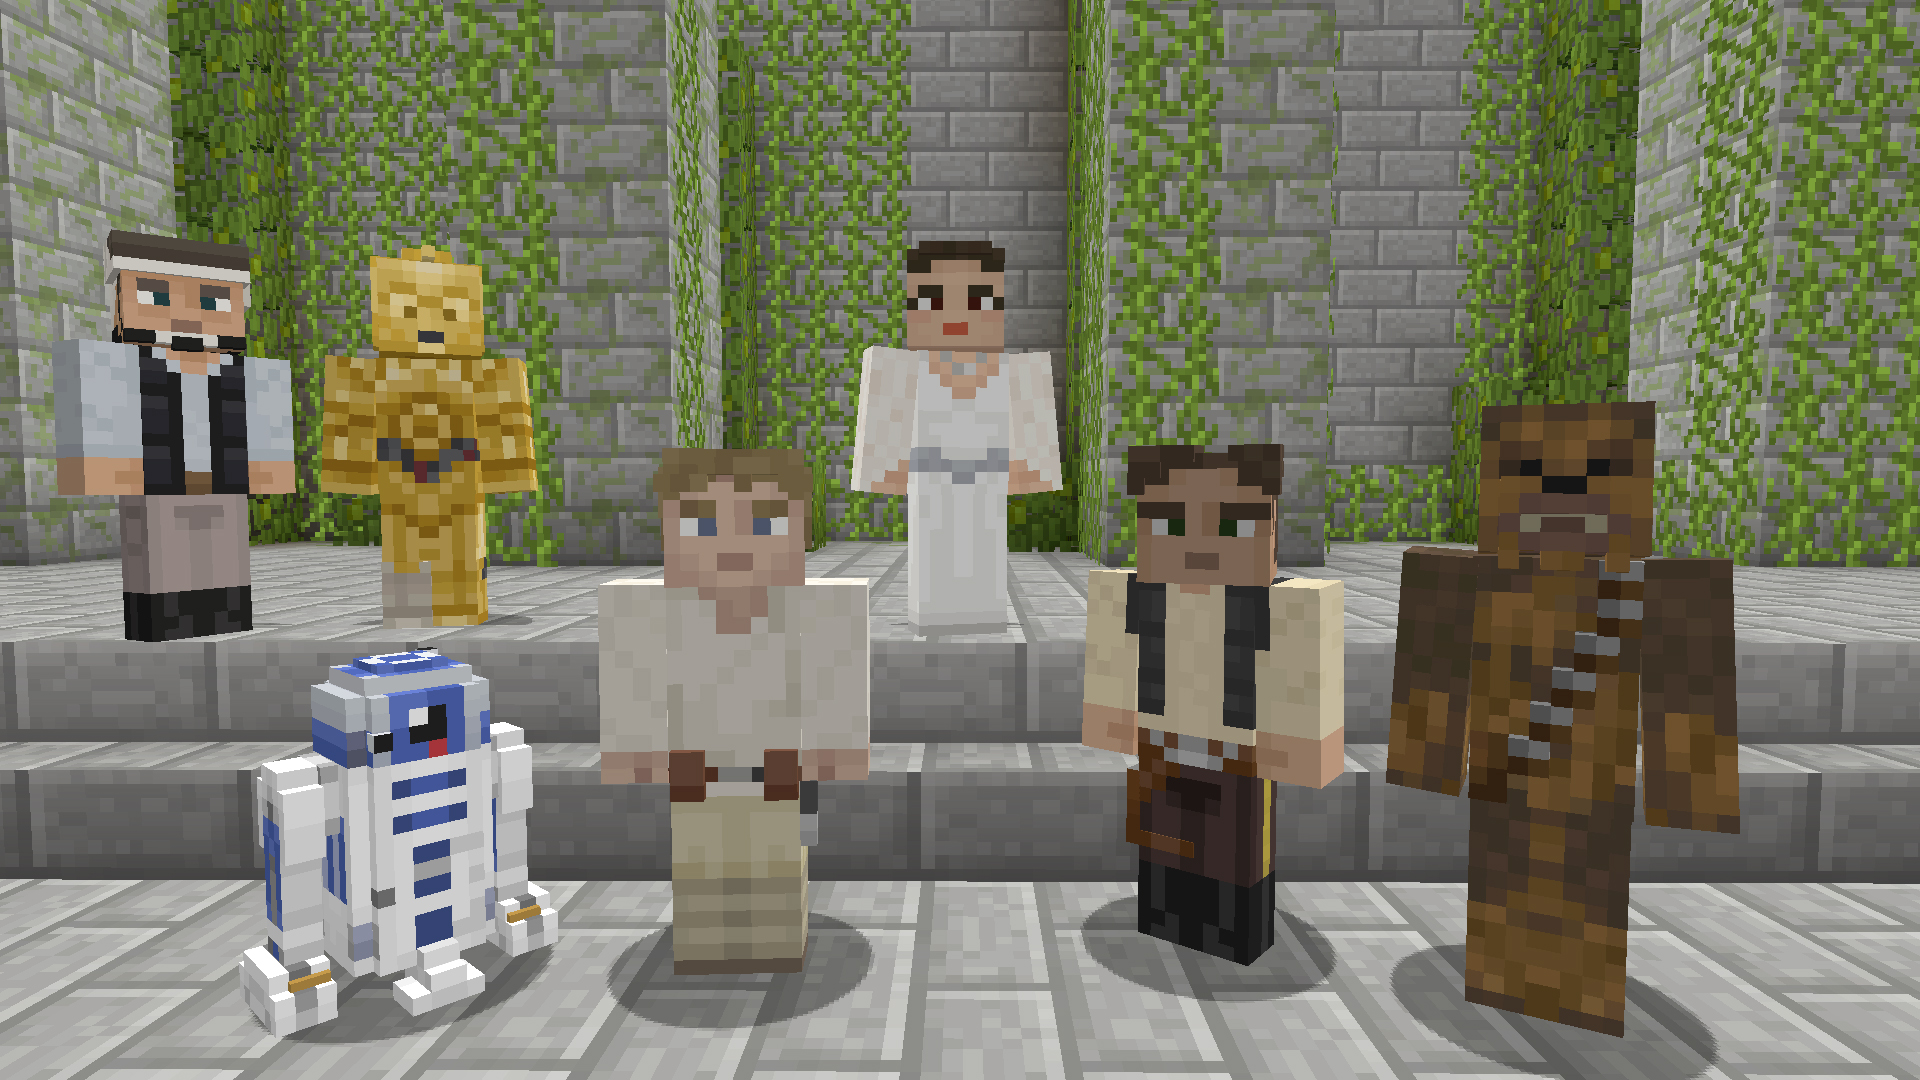 Star Wars Classic Skin Pack available now for Minecraft on Xbox